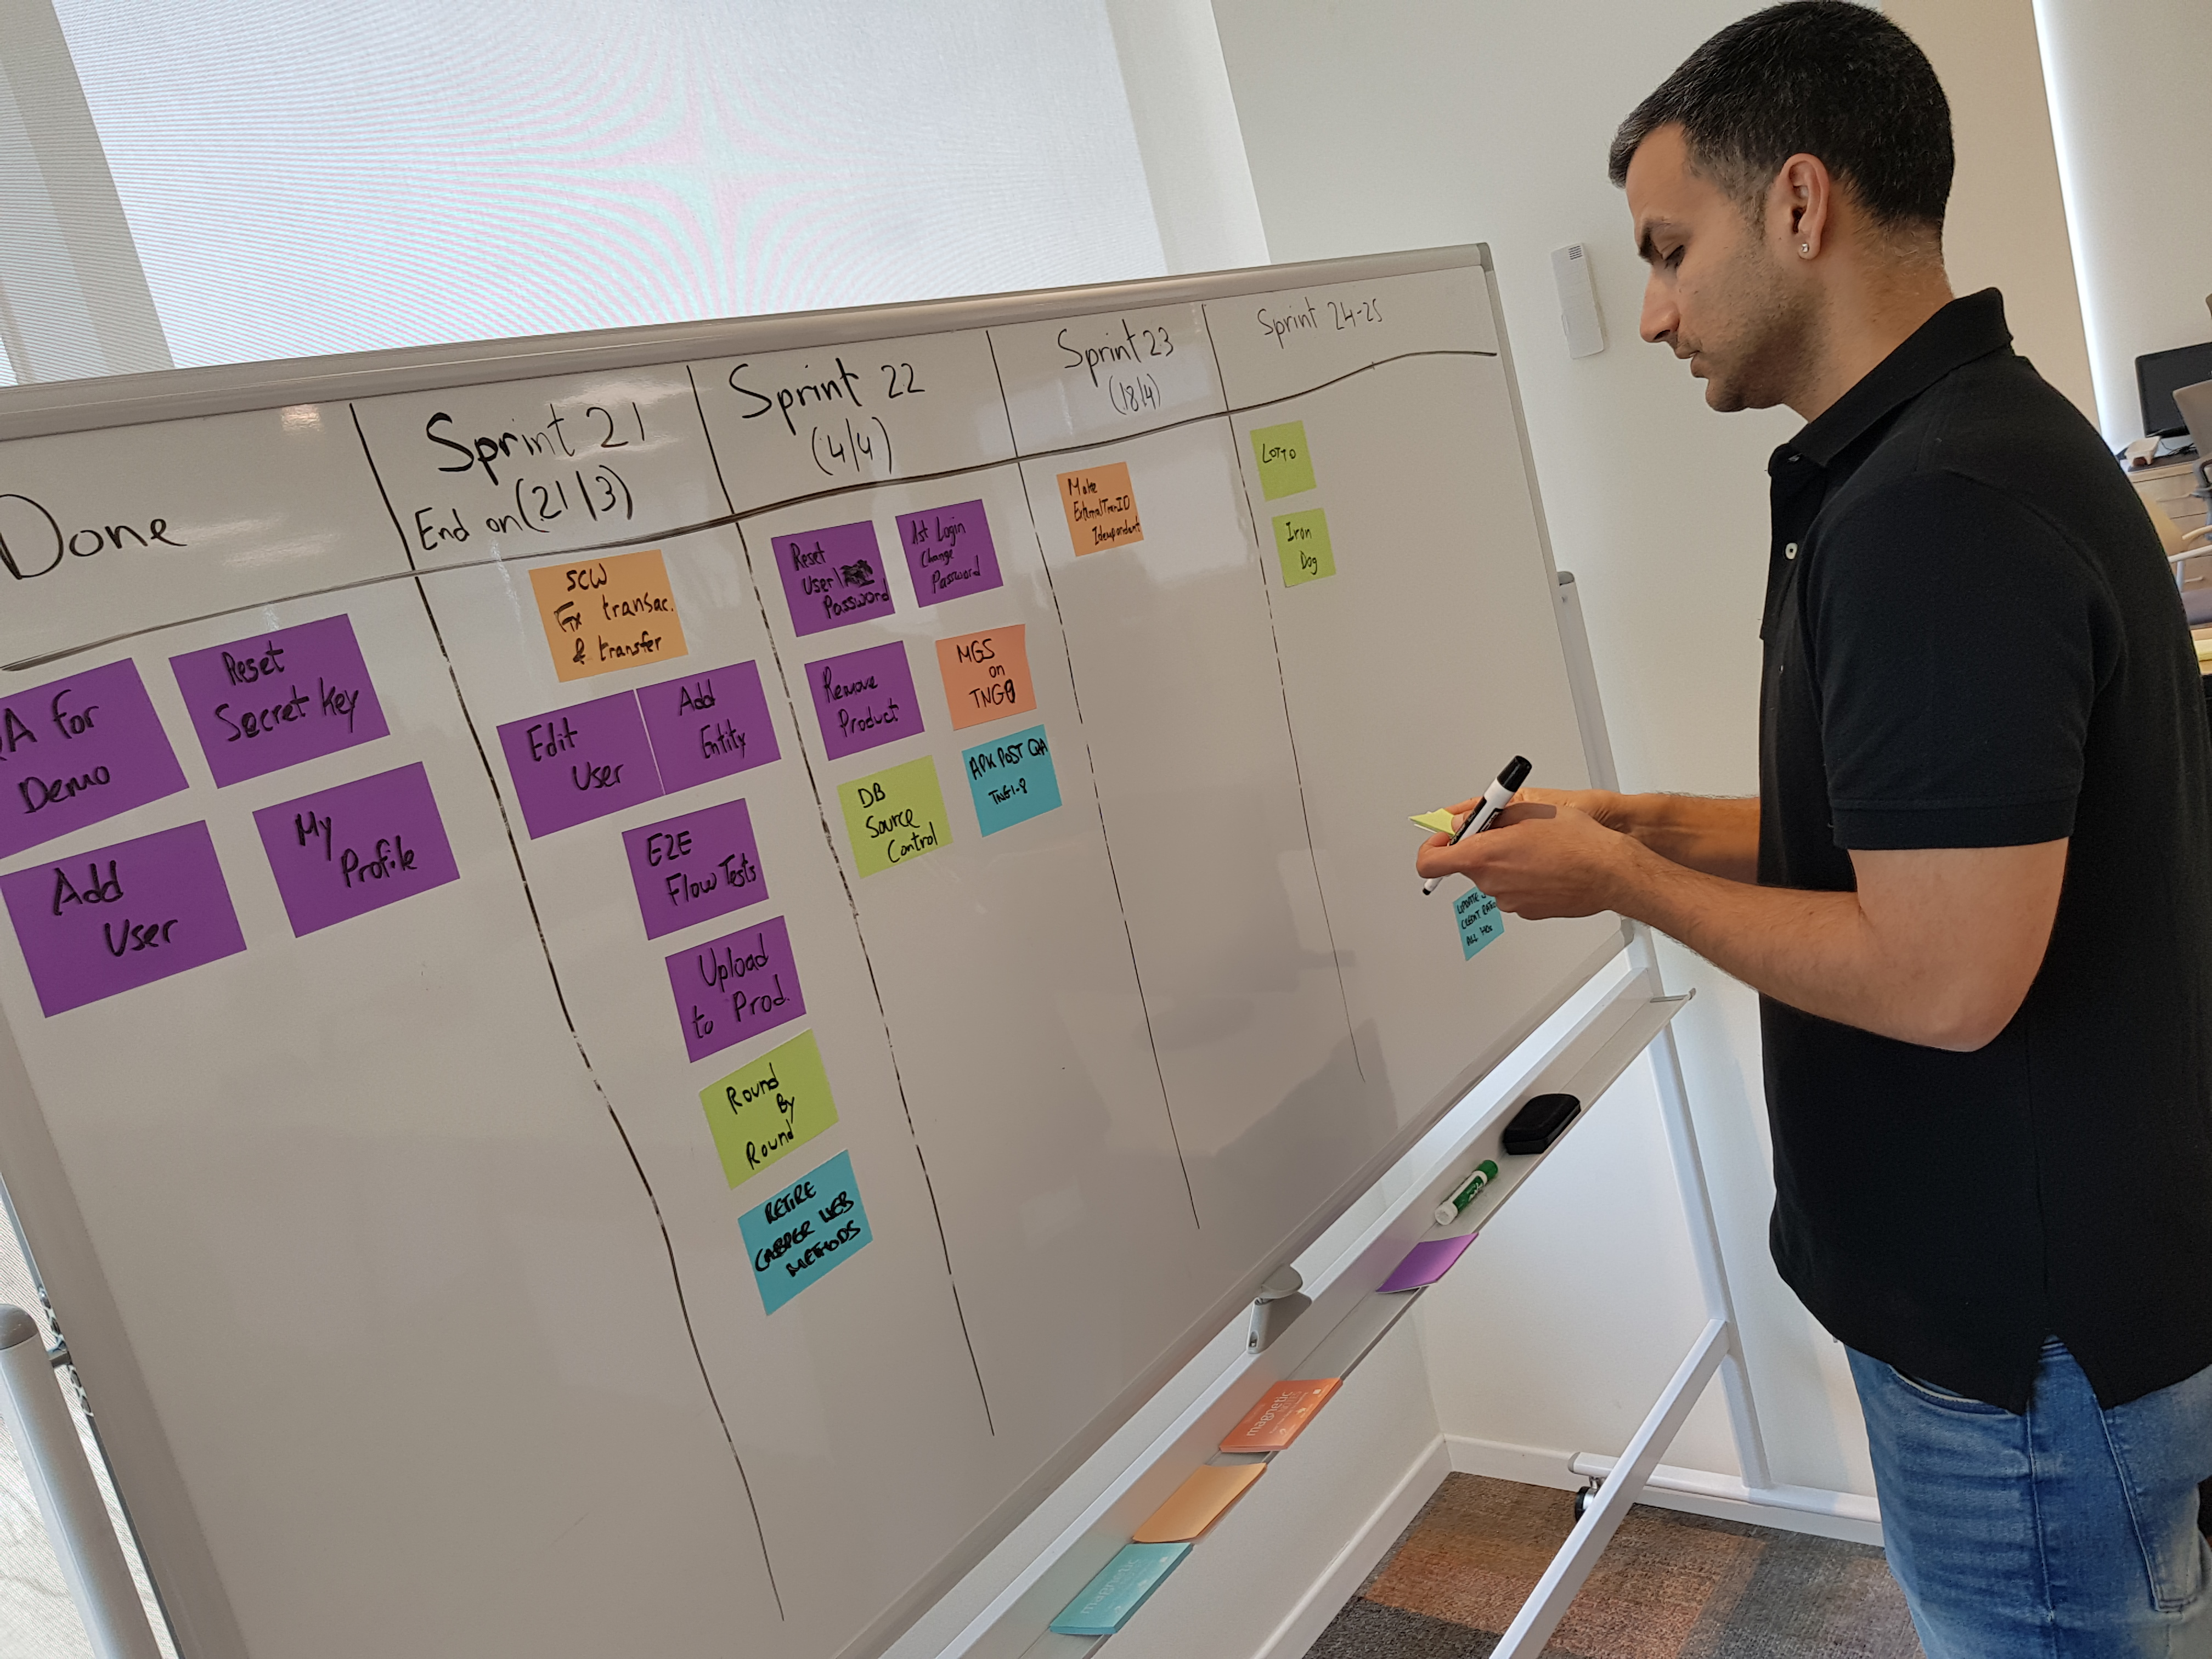 product owner sprints board - long term palnning